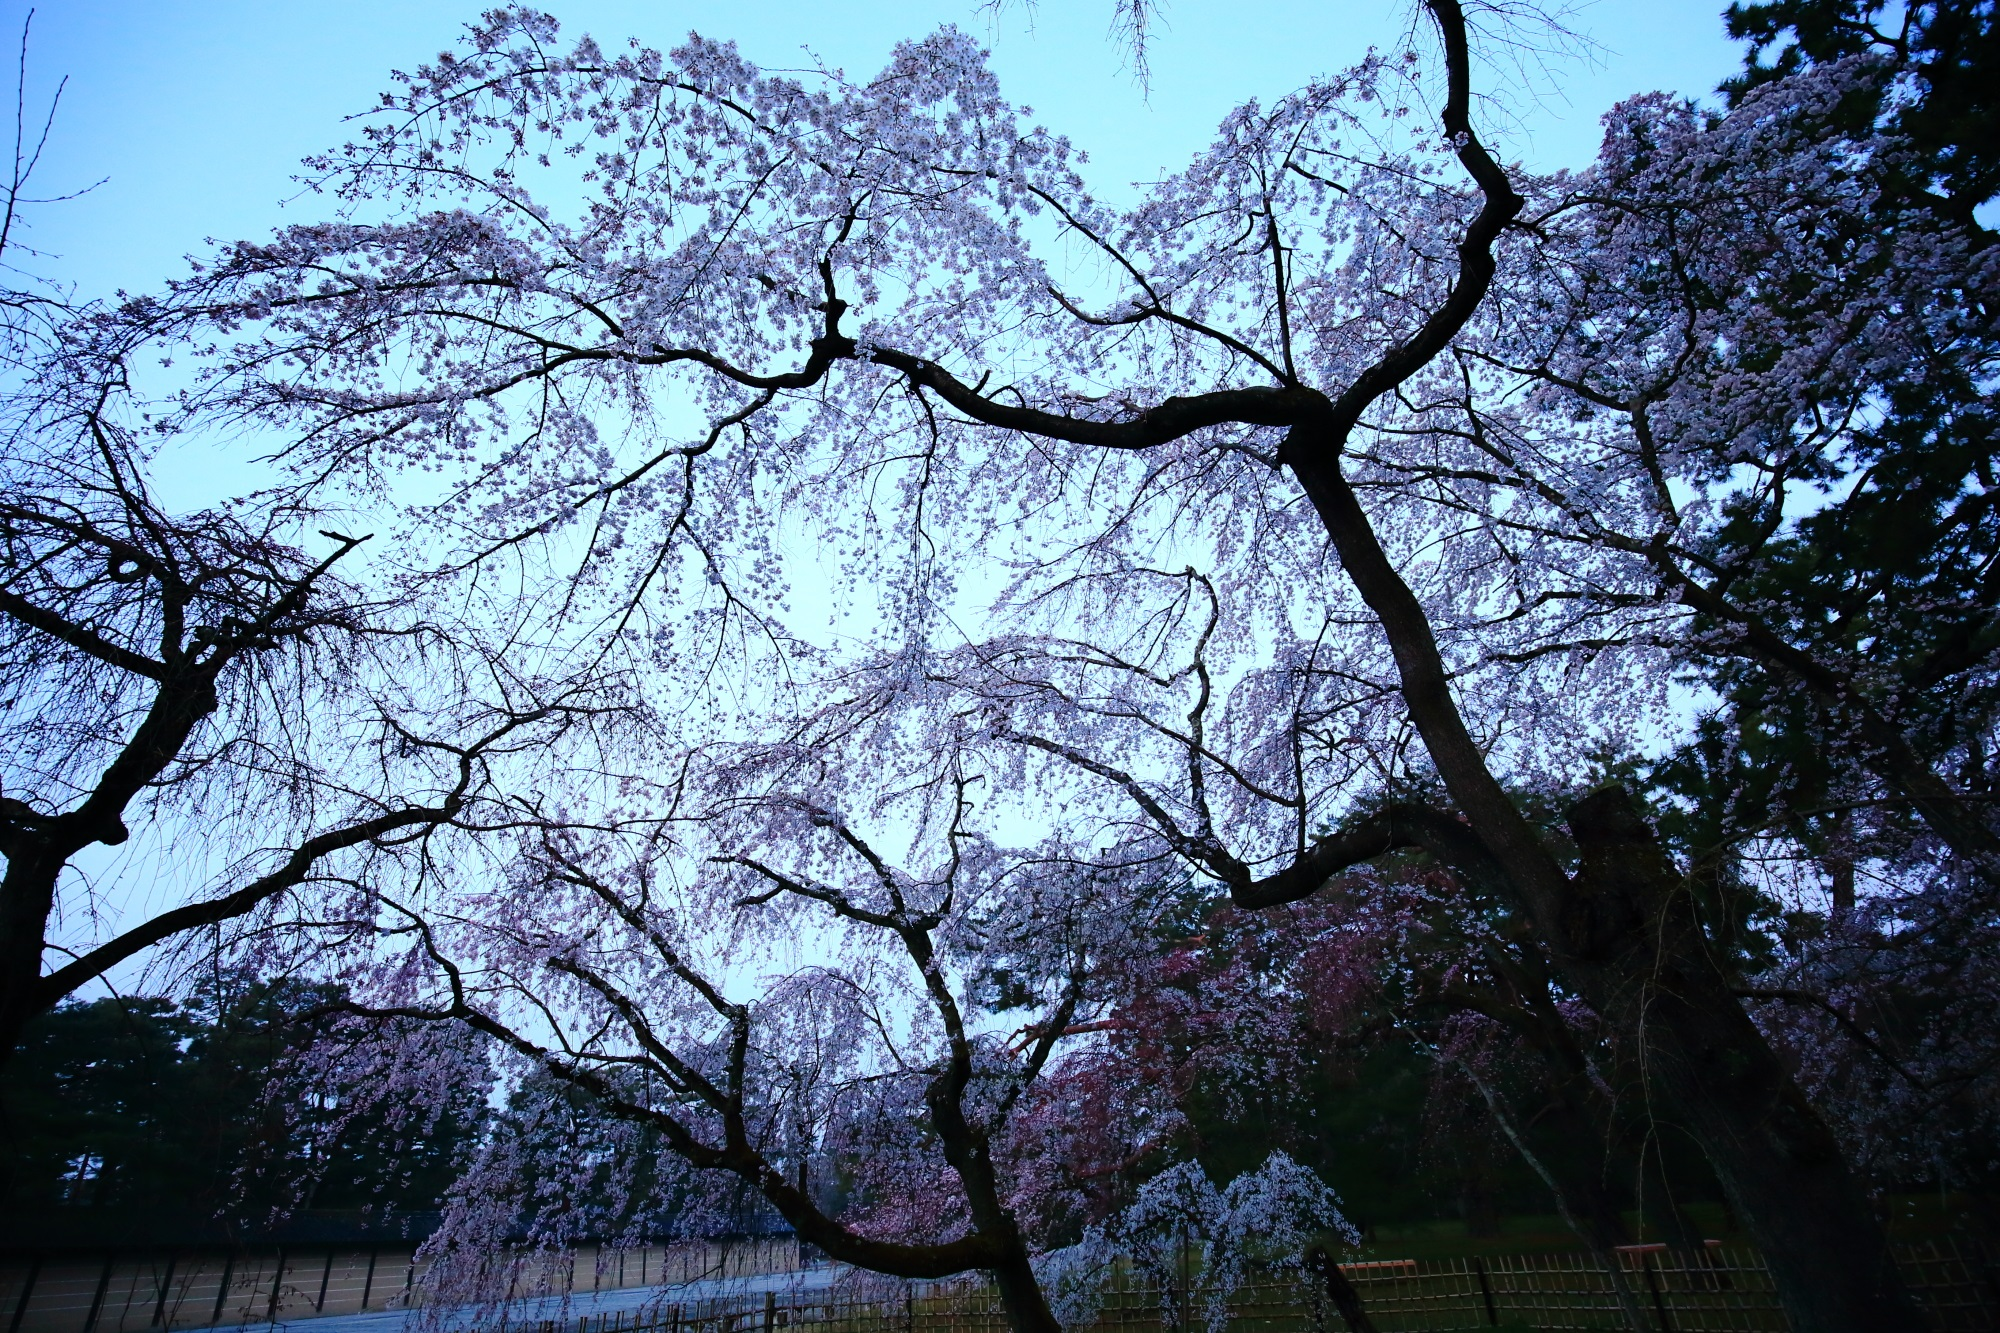 Kyoto Gyoen Garden weeping cherry tree in spring